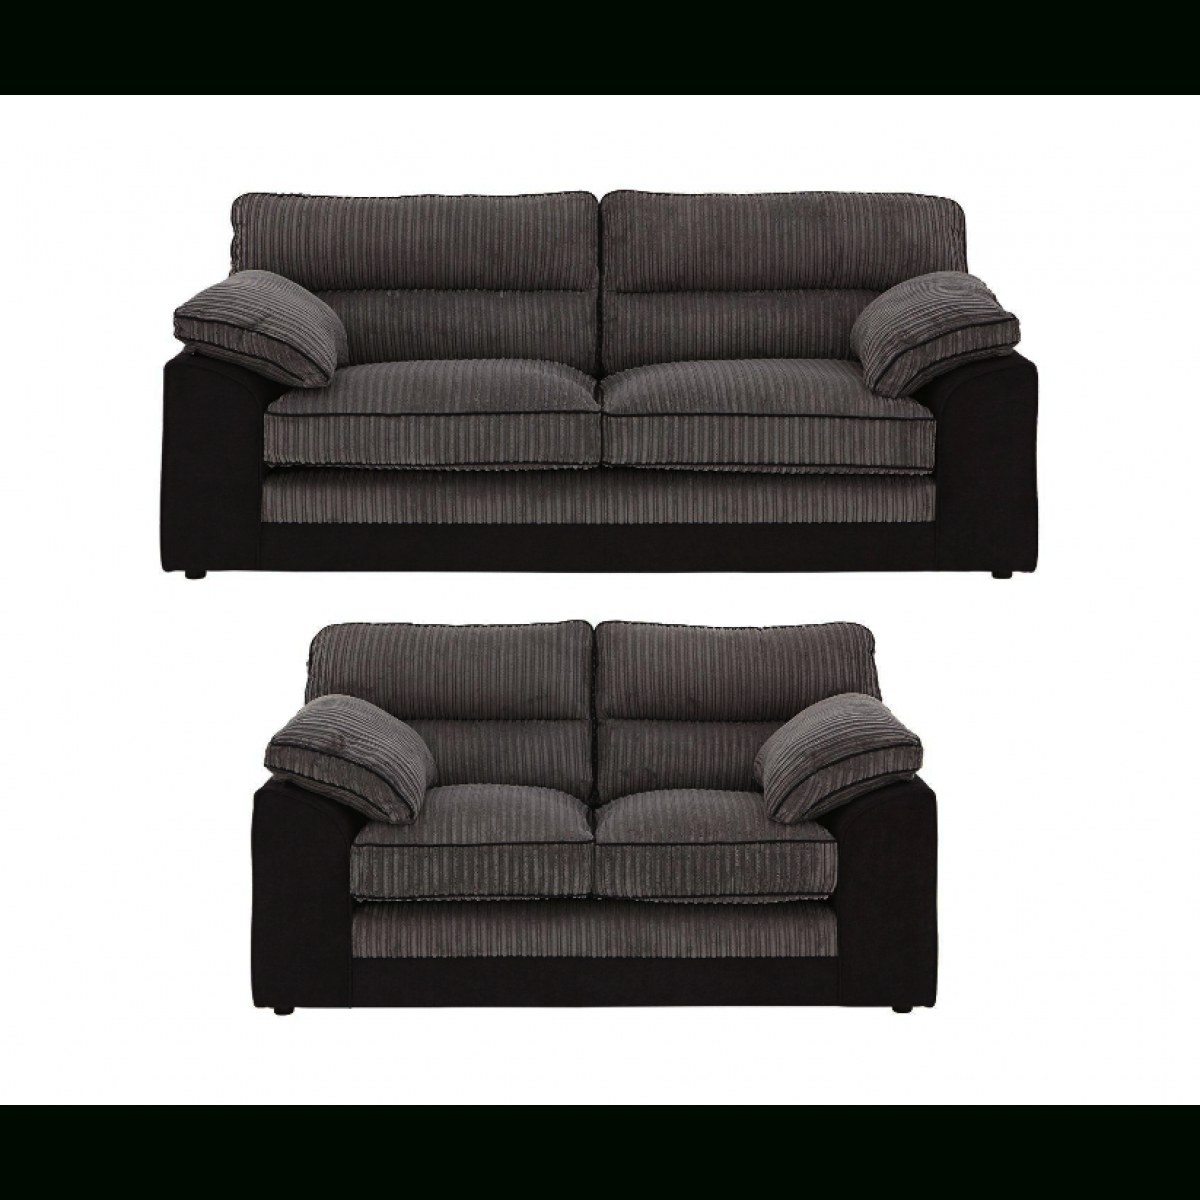 Delta 3 Seater Plus 2 Seater Sofa – Furnico Village For Black 2 Seater Sofas (Image 8 of 20)